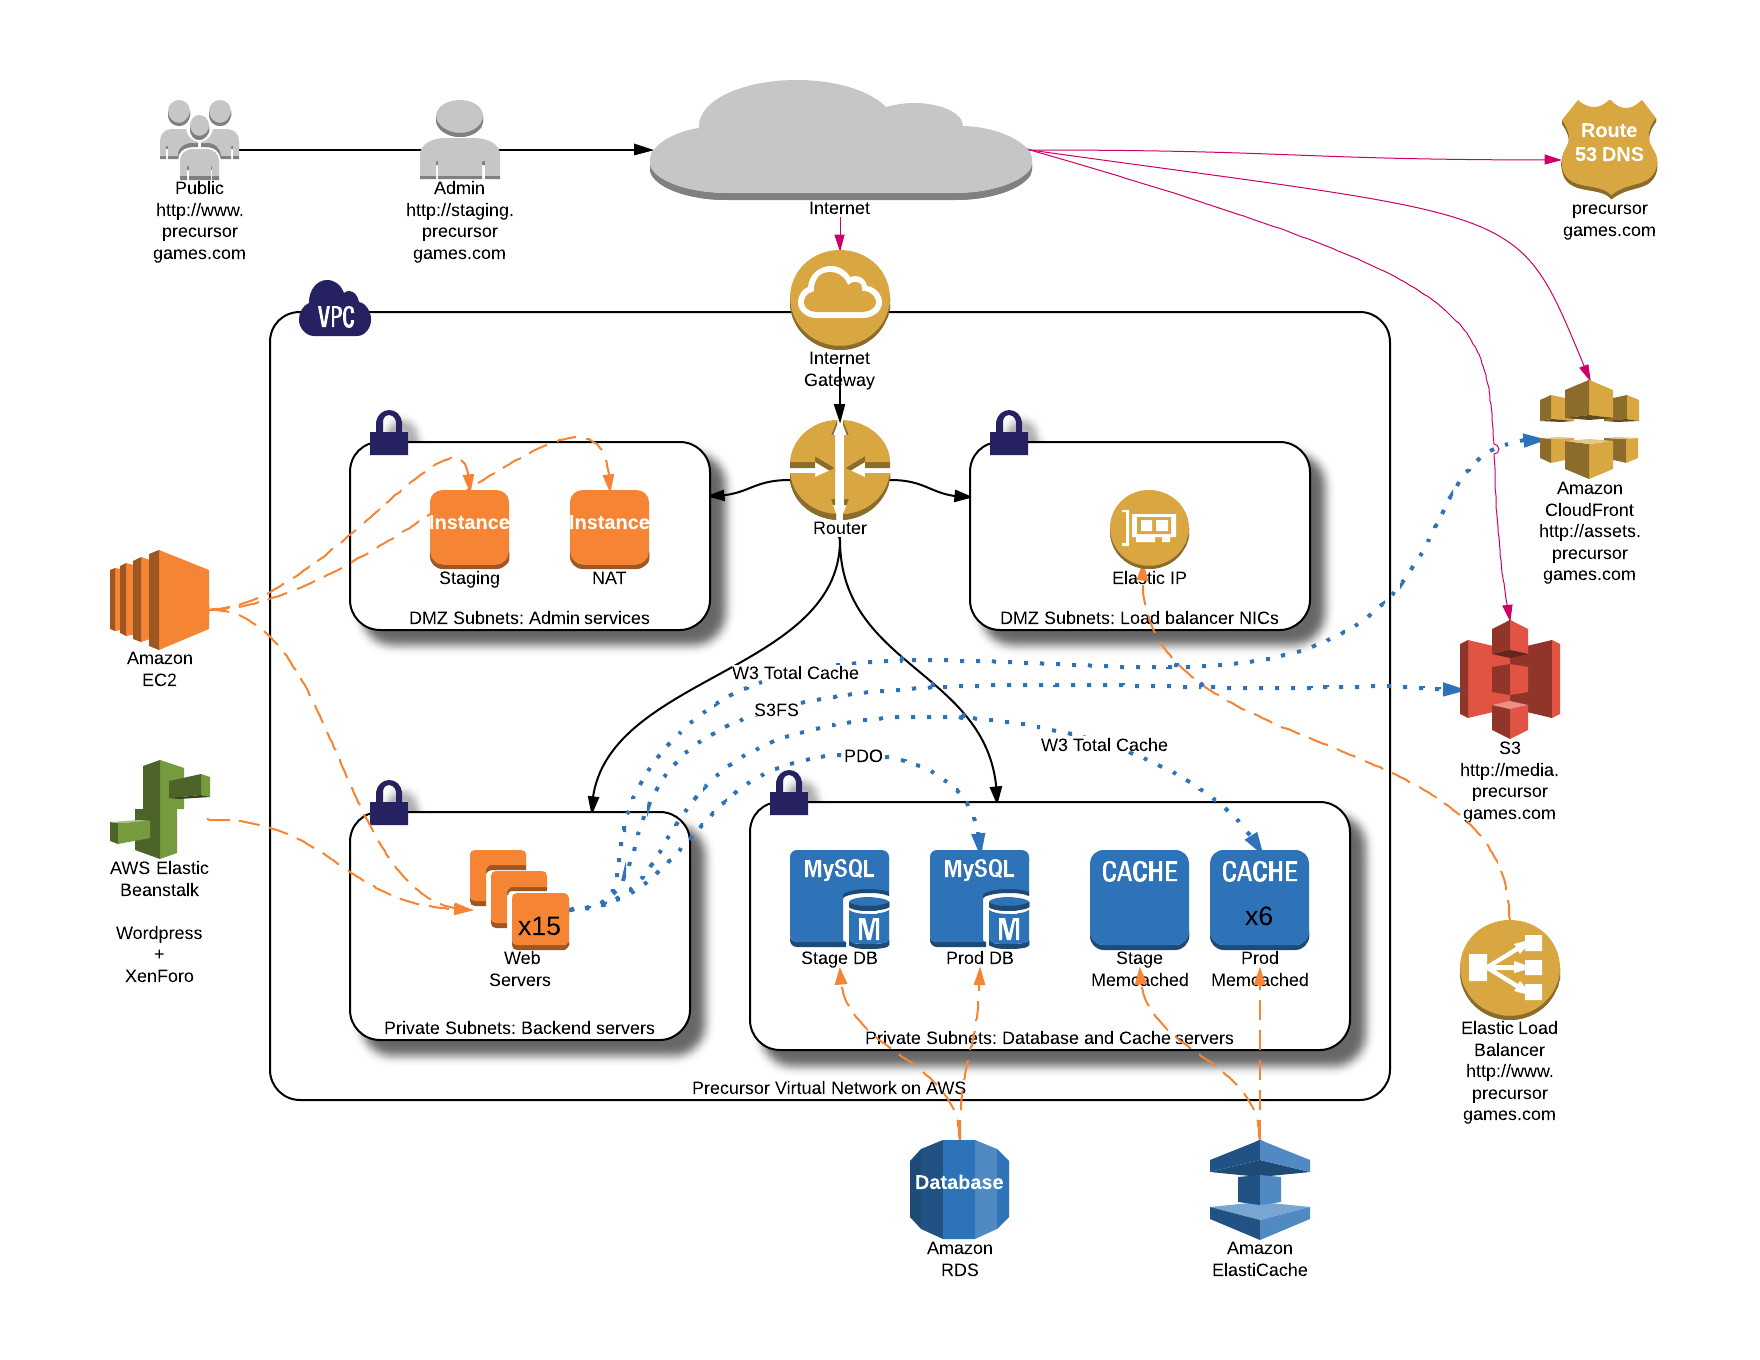 A diagram showing the deployment architecture on AWS